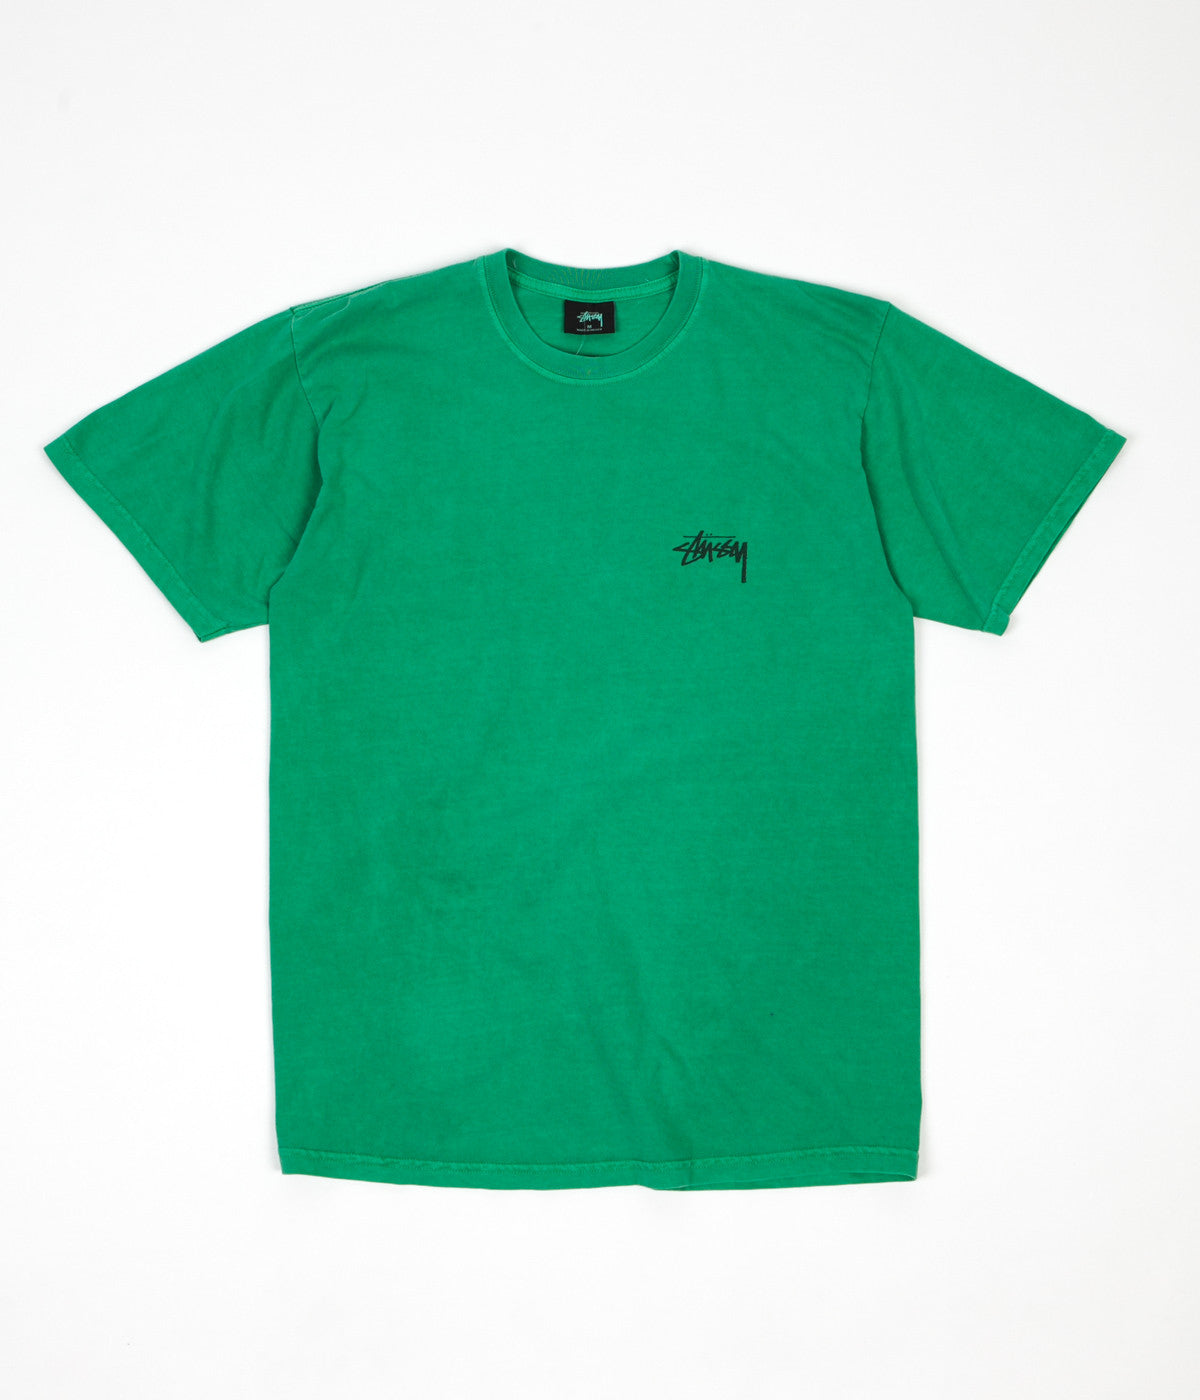 Stussy Dice T-Shirt - Green